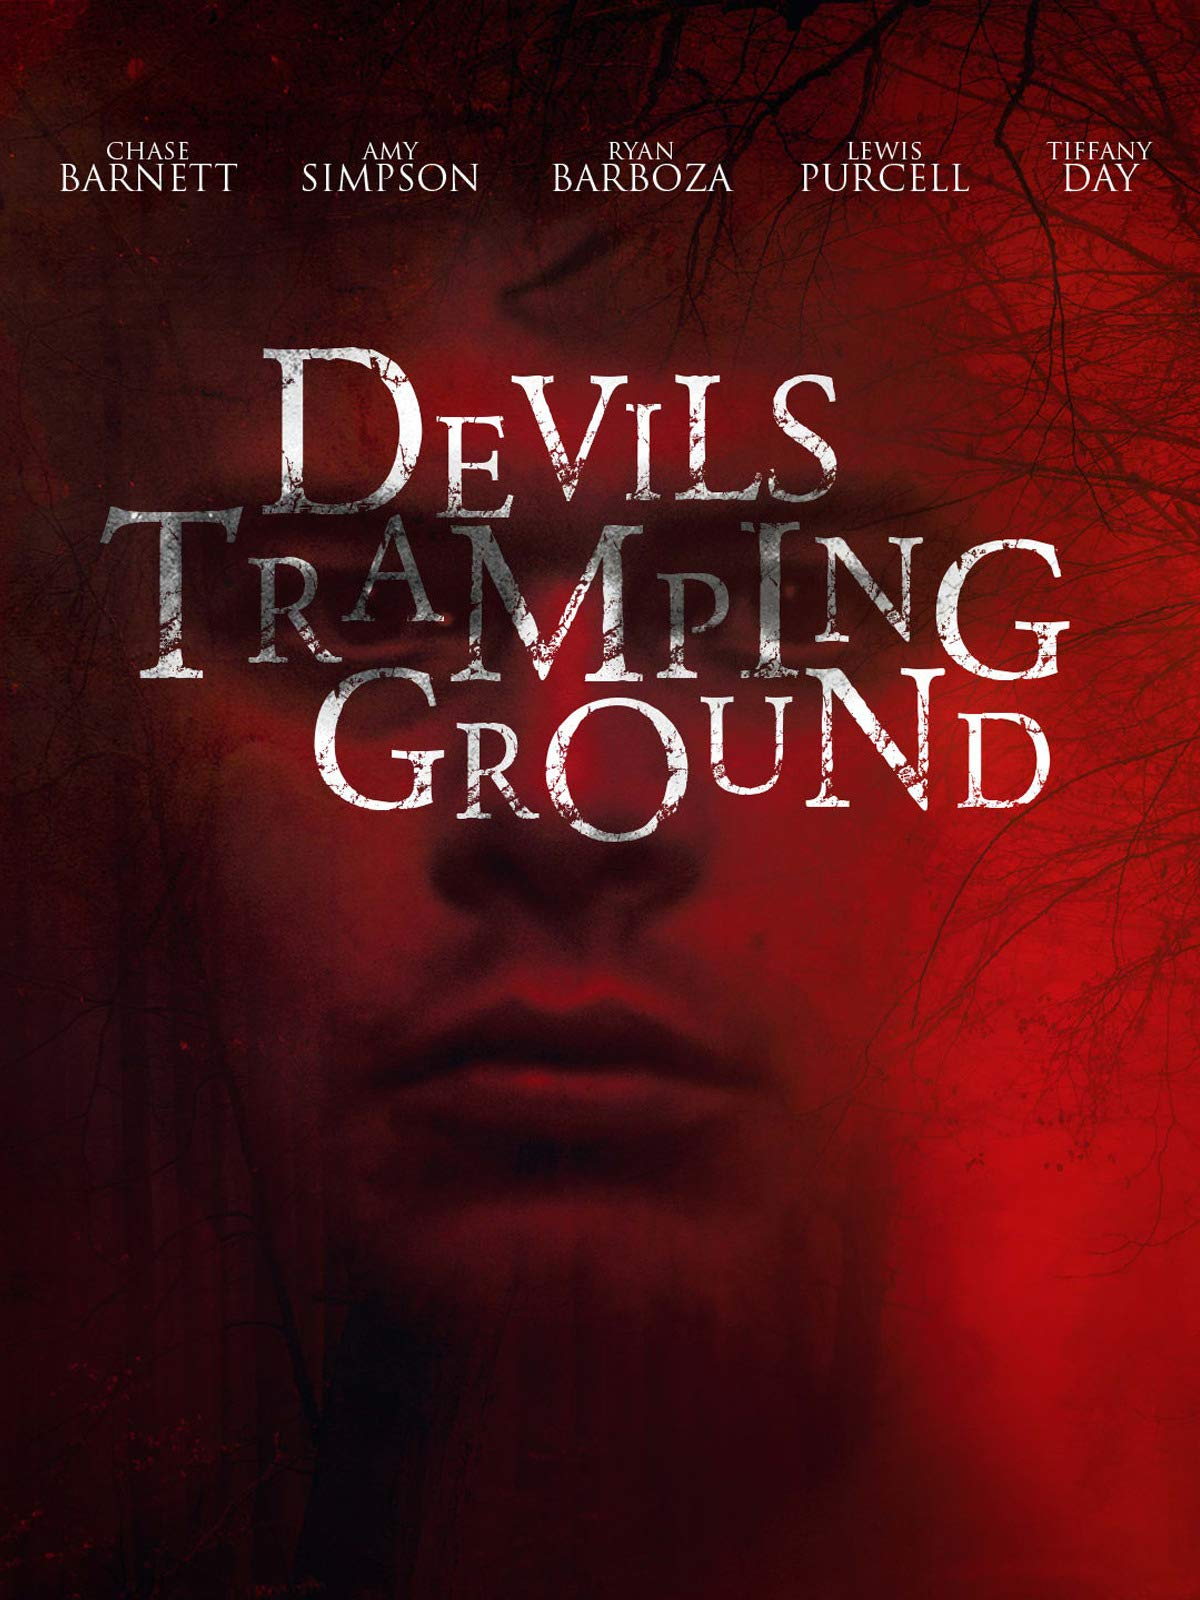 Devils Tramping Ground